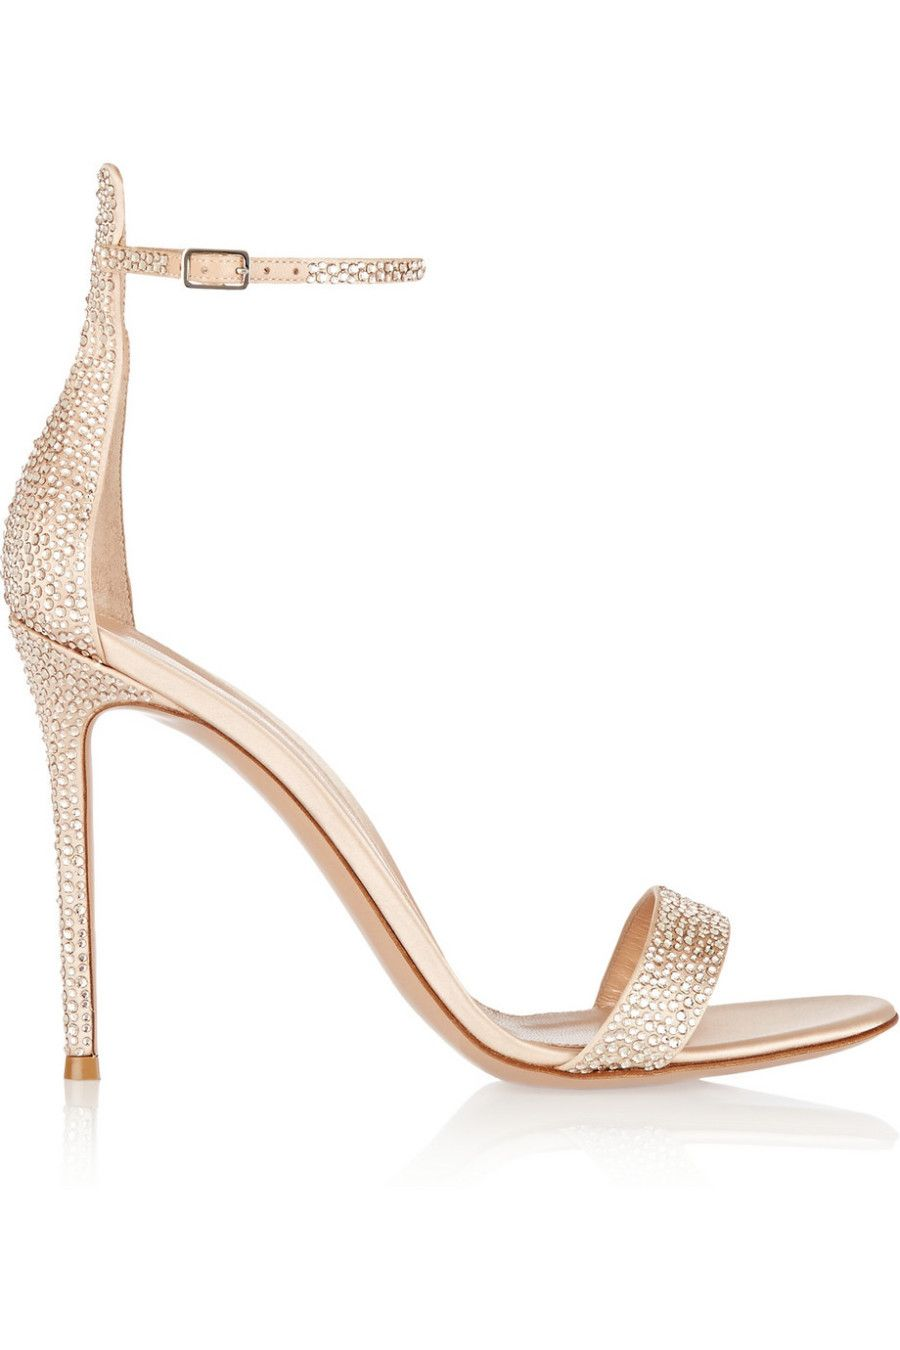 Gianvito Rossi Embellished Satin Sandals: http://www.stylemepretty.com/2016/06/10/summer-wedding-guest-outfit-fashion-ideas/